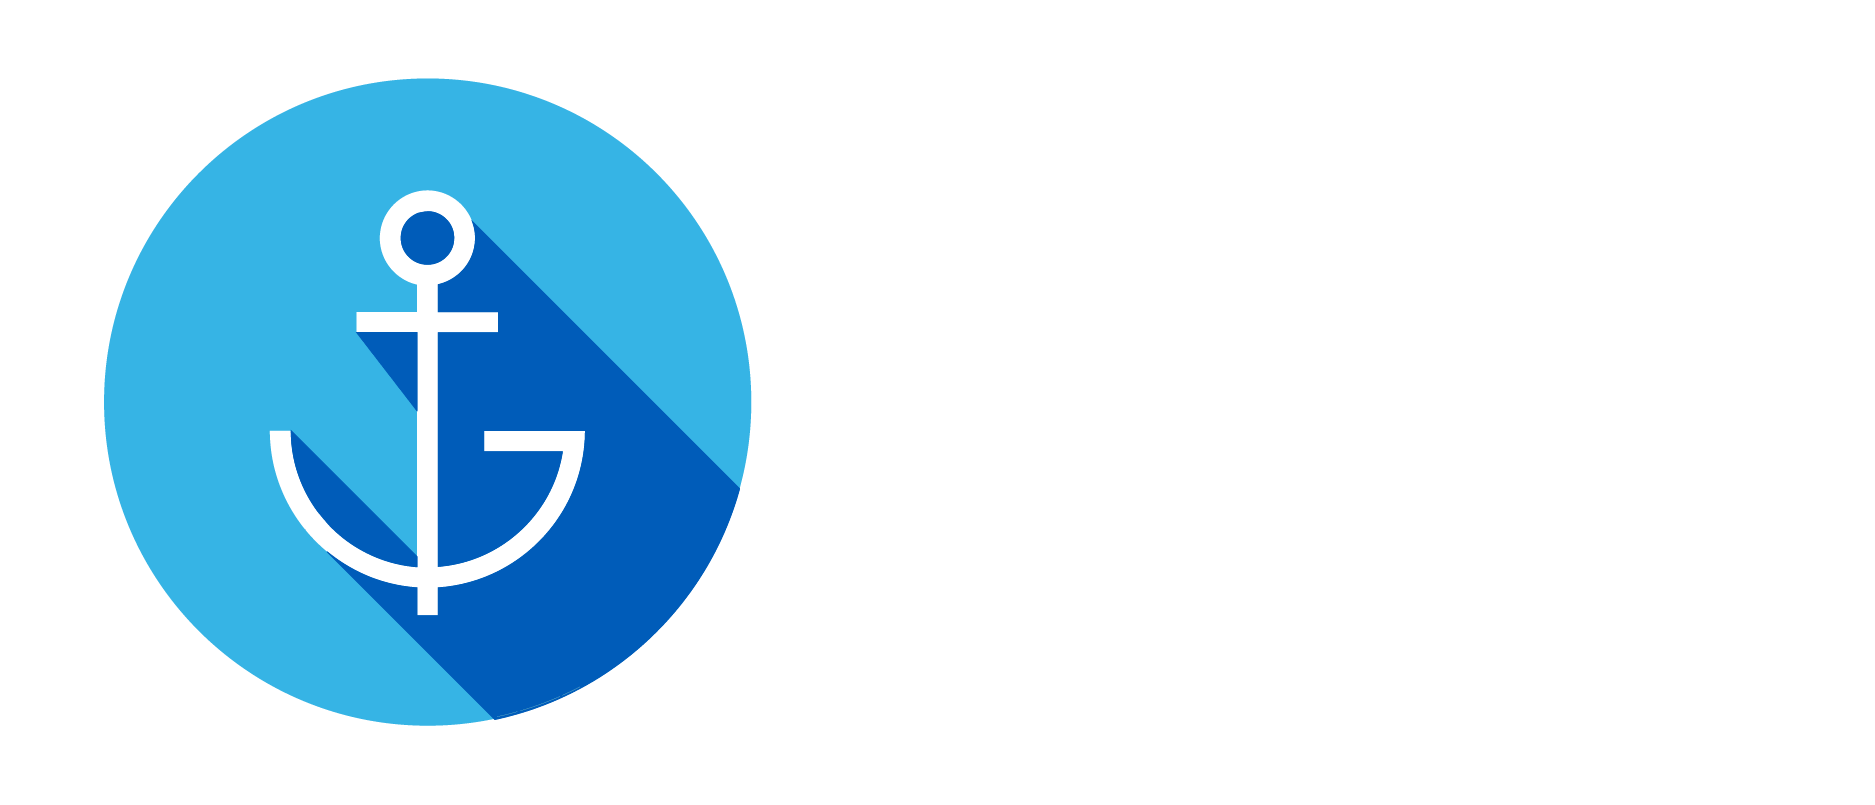 The Jamrog Group